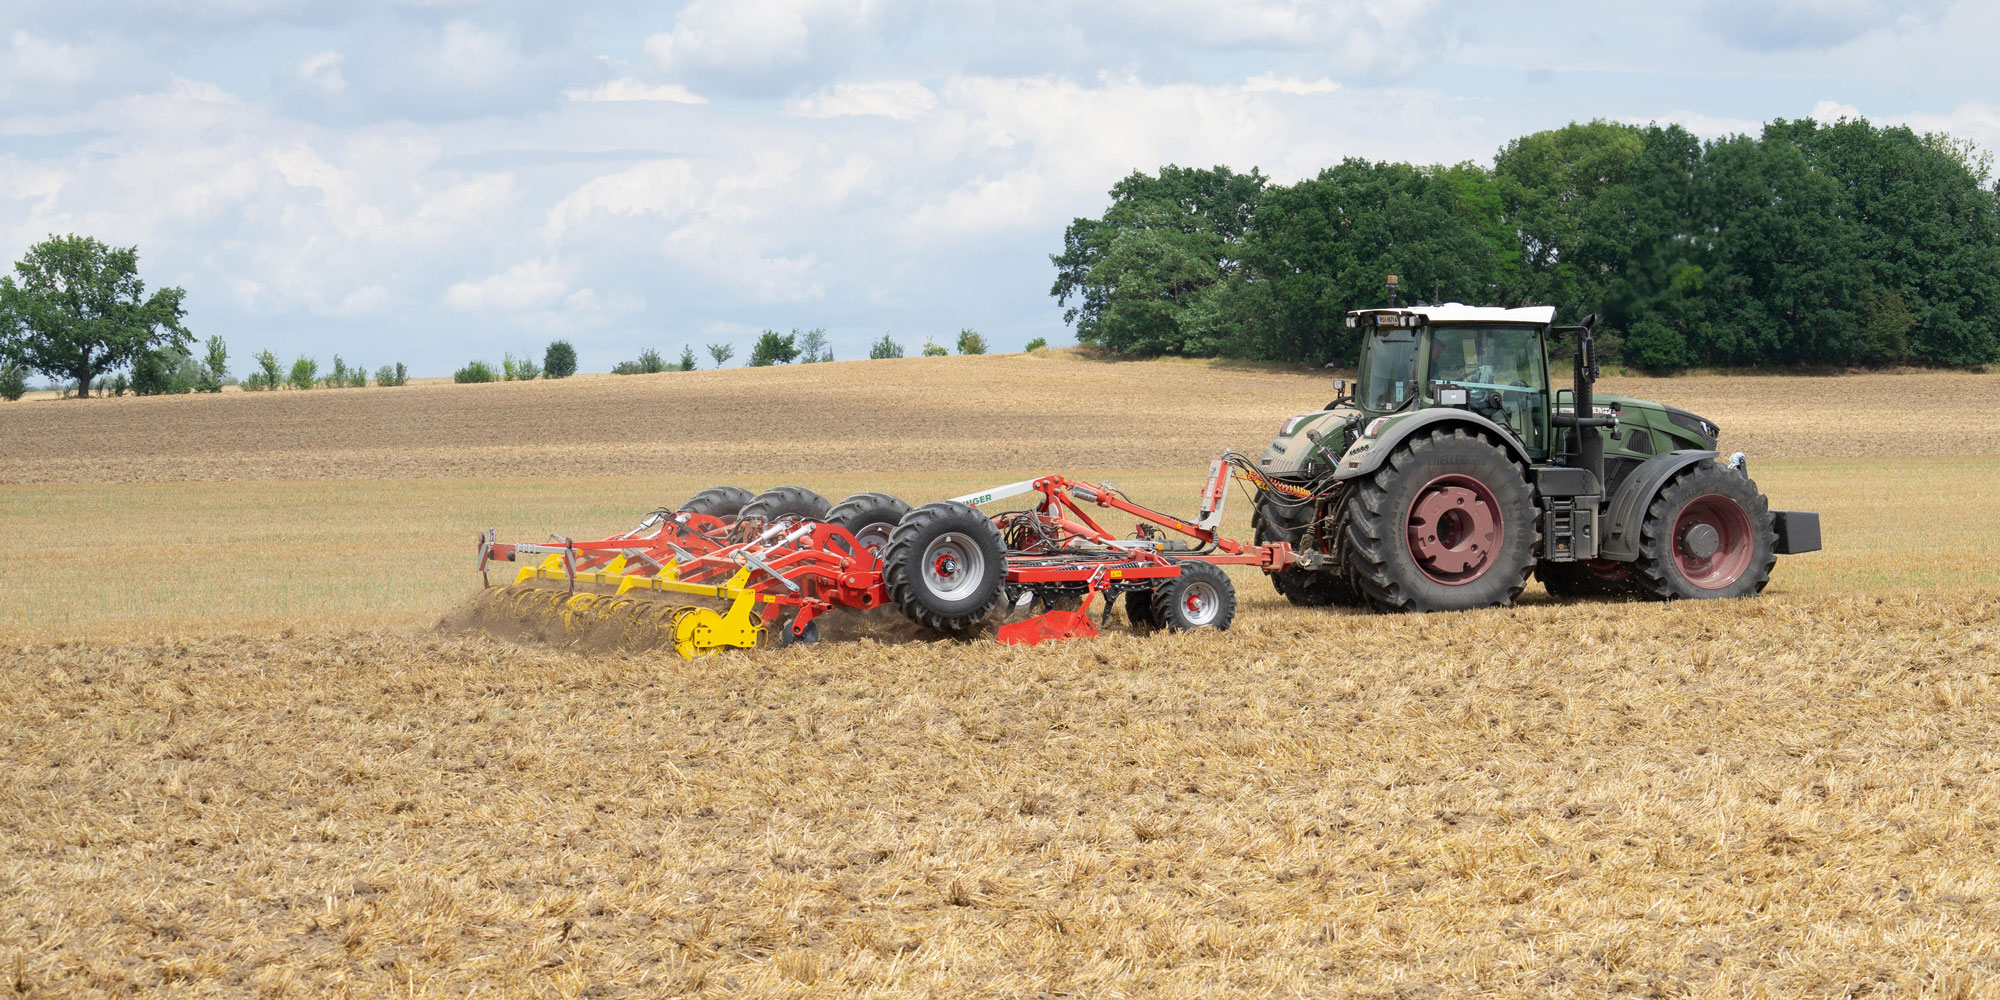 Produkte Boden & Saat: Ploughs, Stubble cultivators, Disc harrows, Power harrows, Seed drills, Short combination cultivators